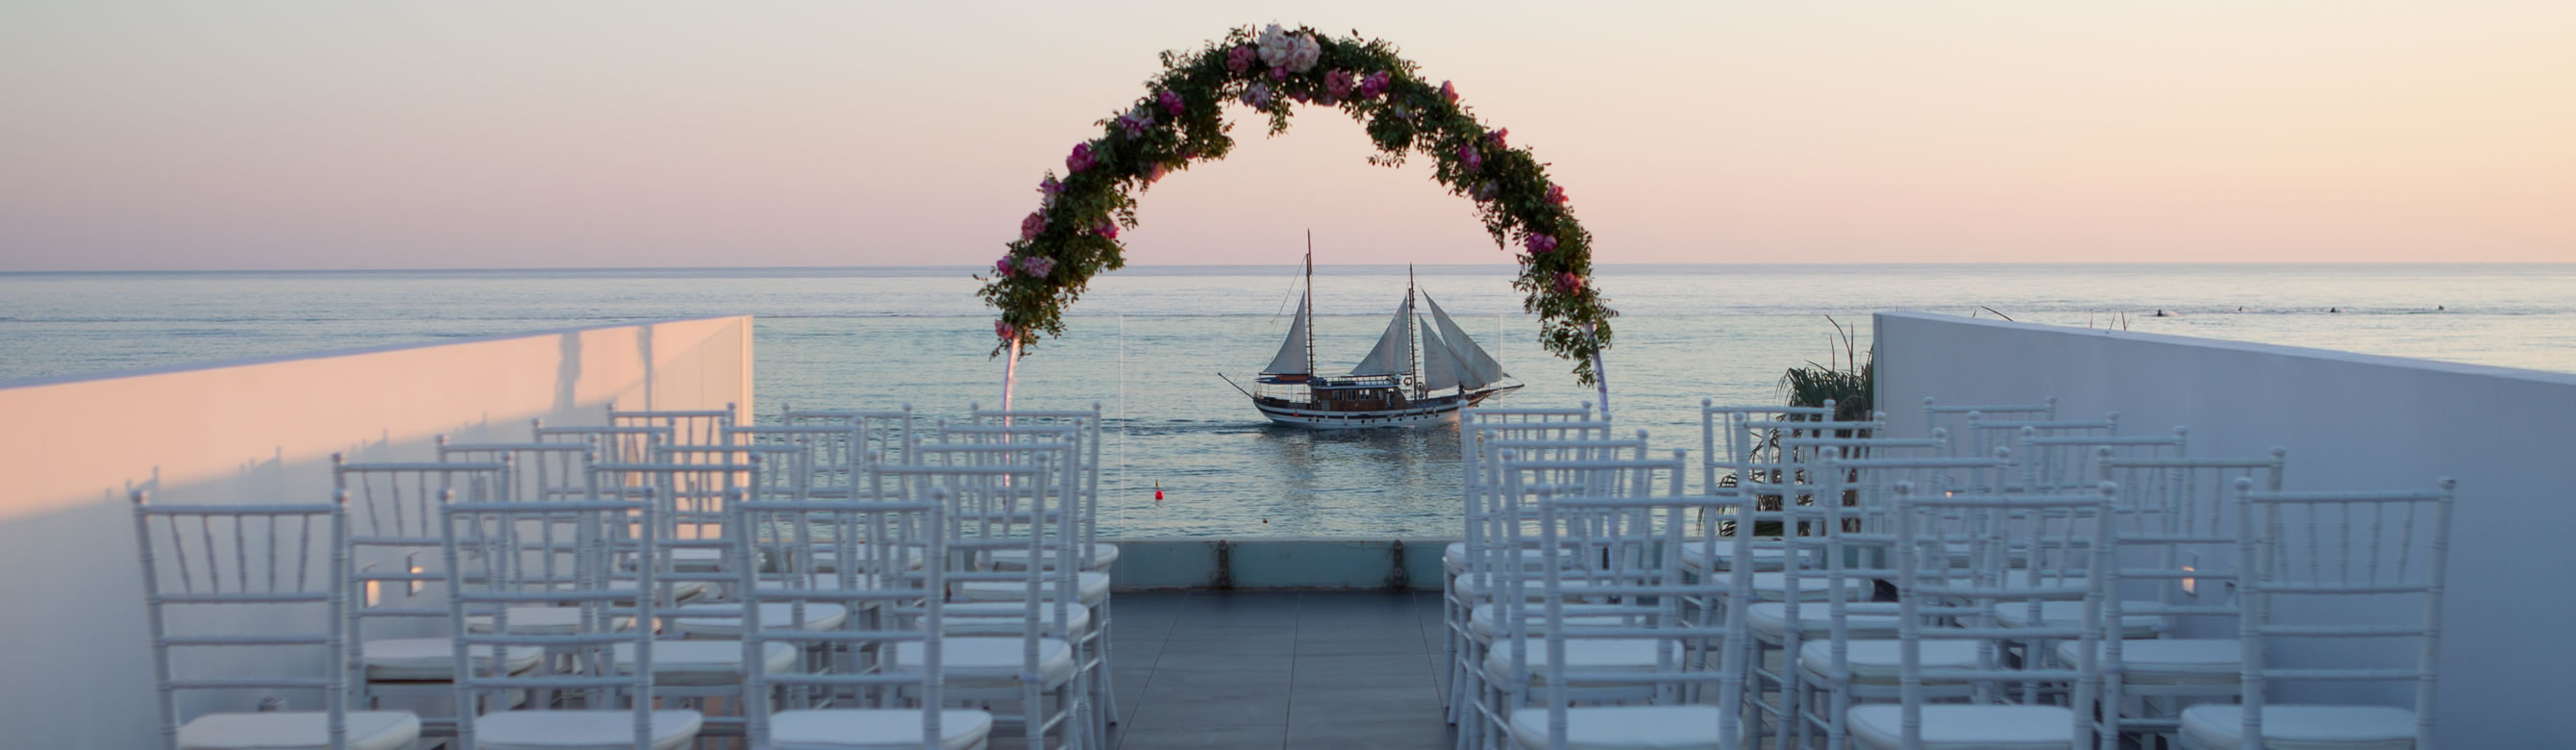 almyra_sunset_wedding_ceremony_setup.jpg